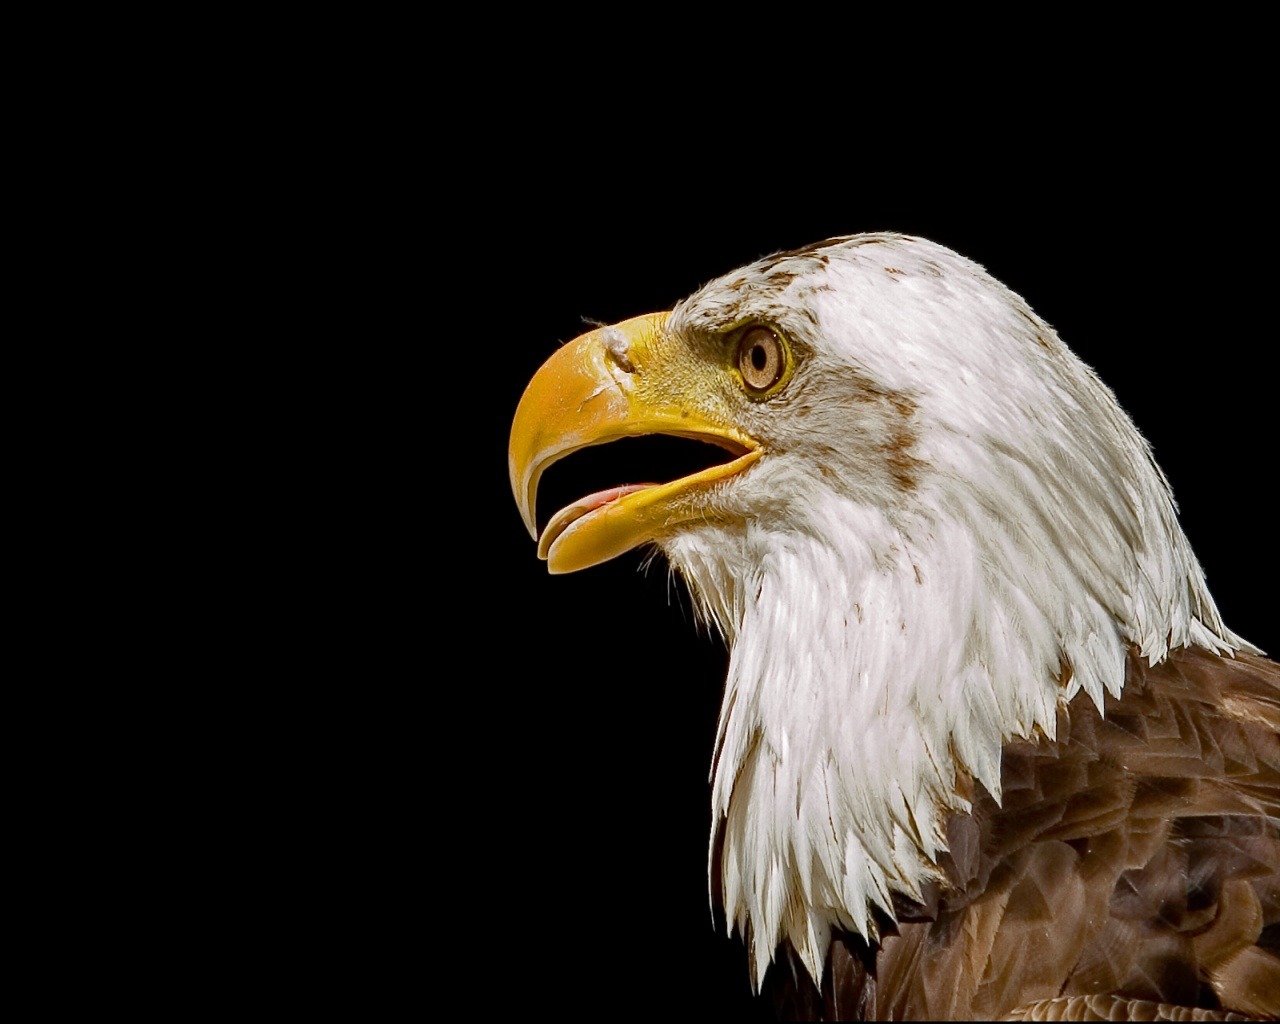 eagle 1280x1024 wallpaper - photo #2